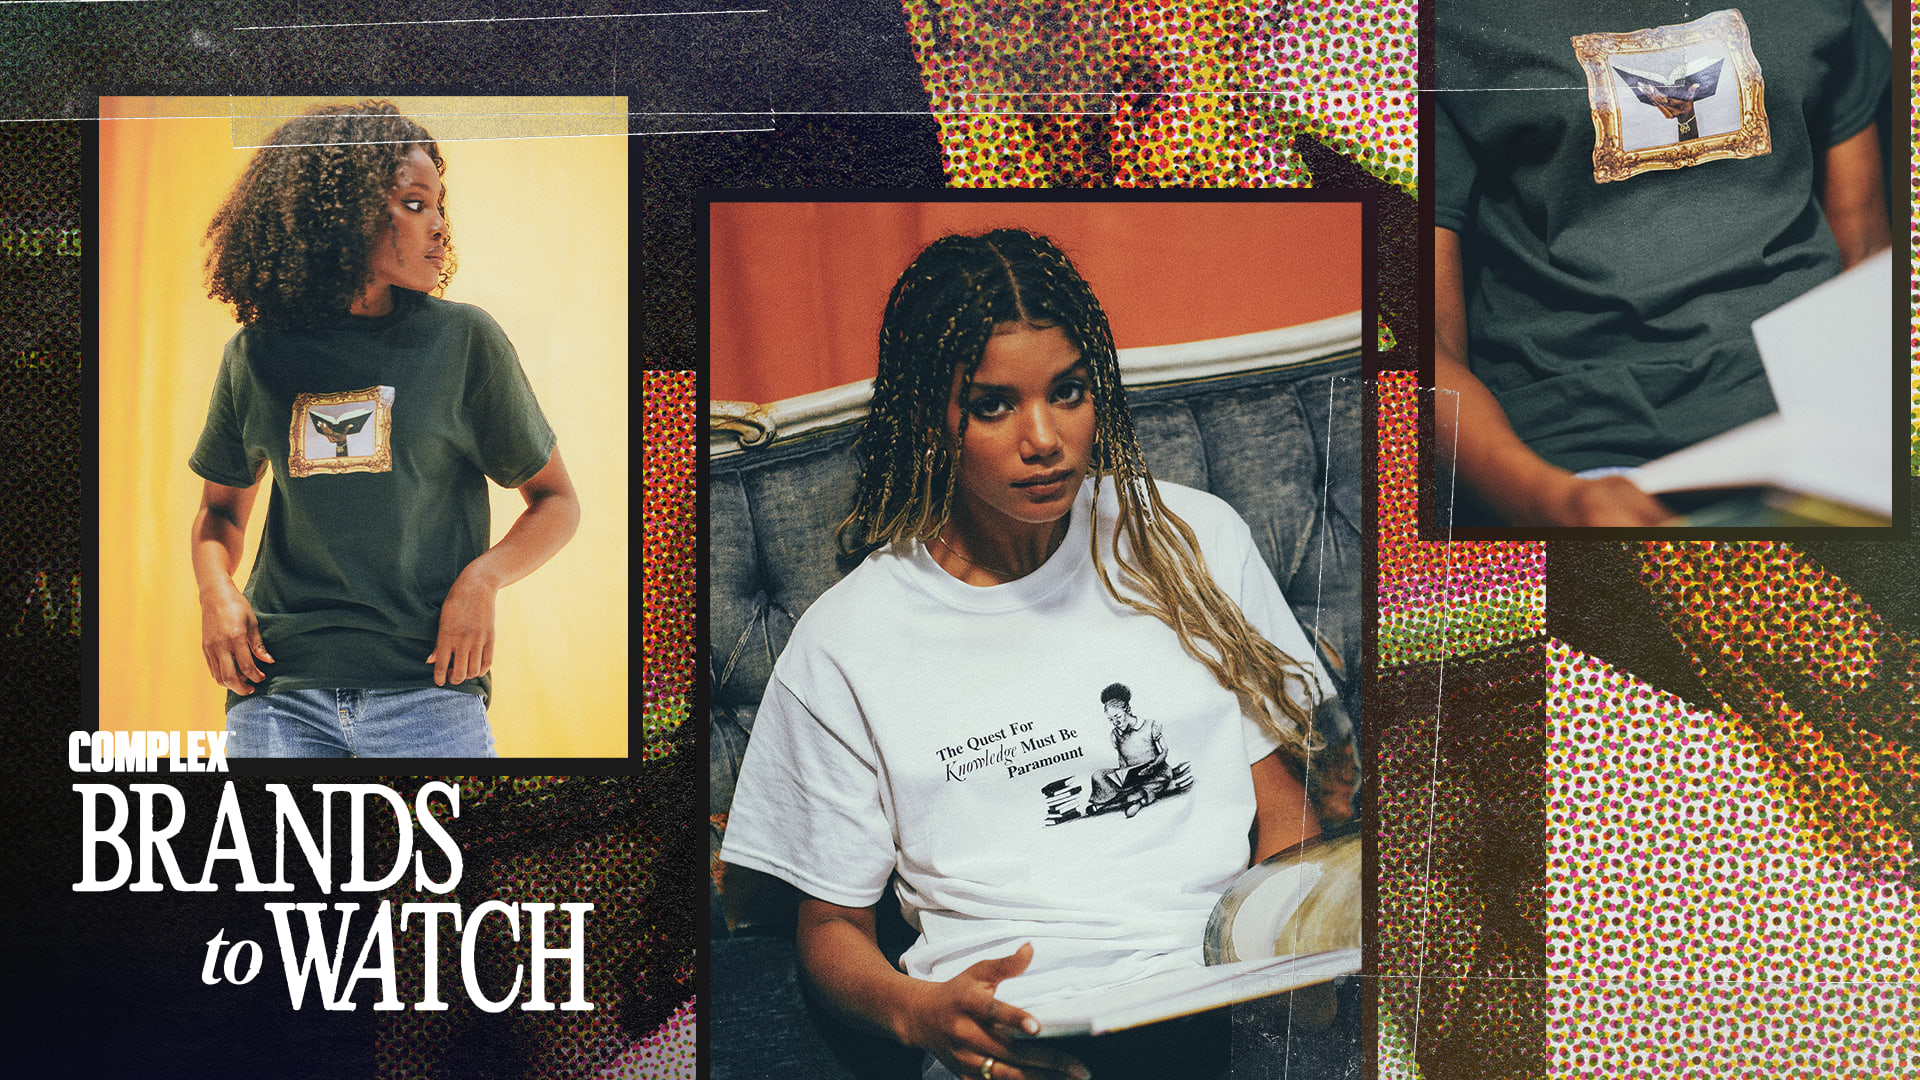 ComplexLand Brands to Watch: How Saint Ivory NYC is Using Streetwear to Support Creative Women